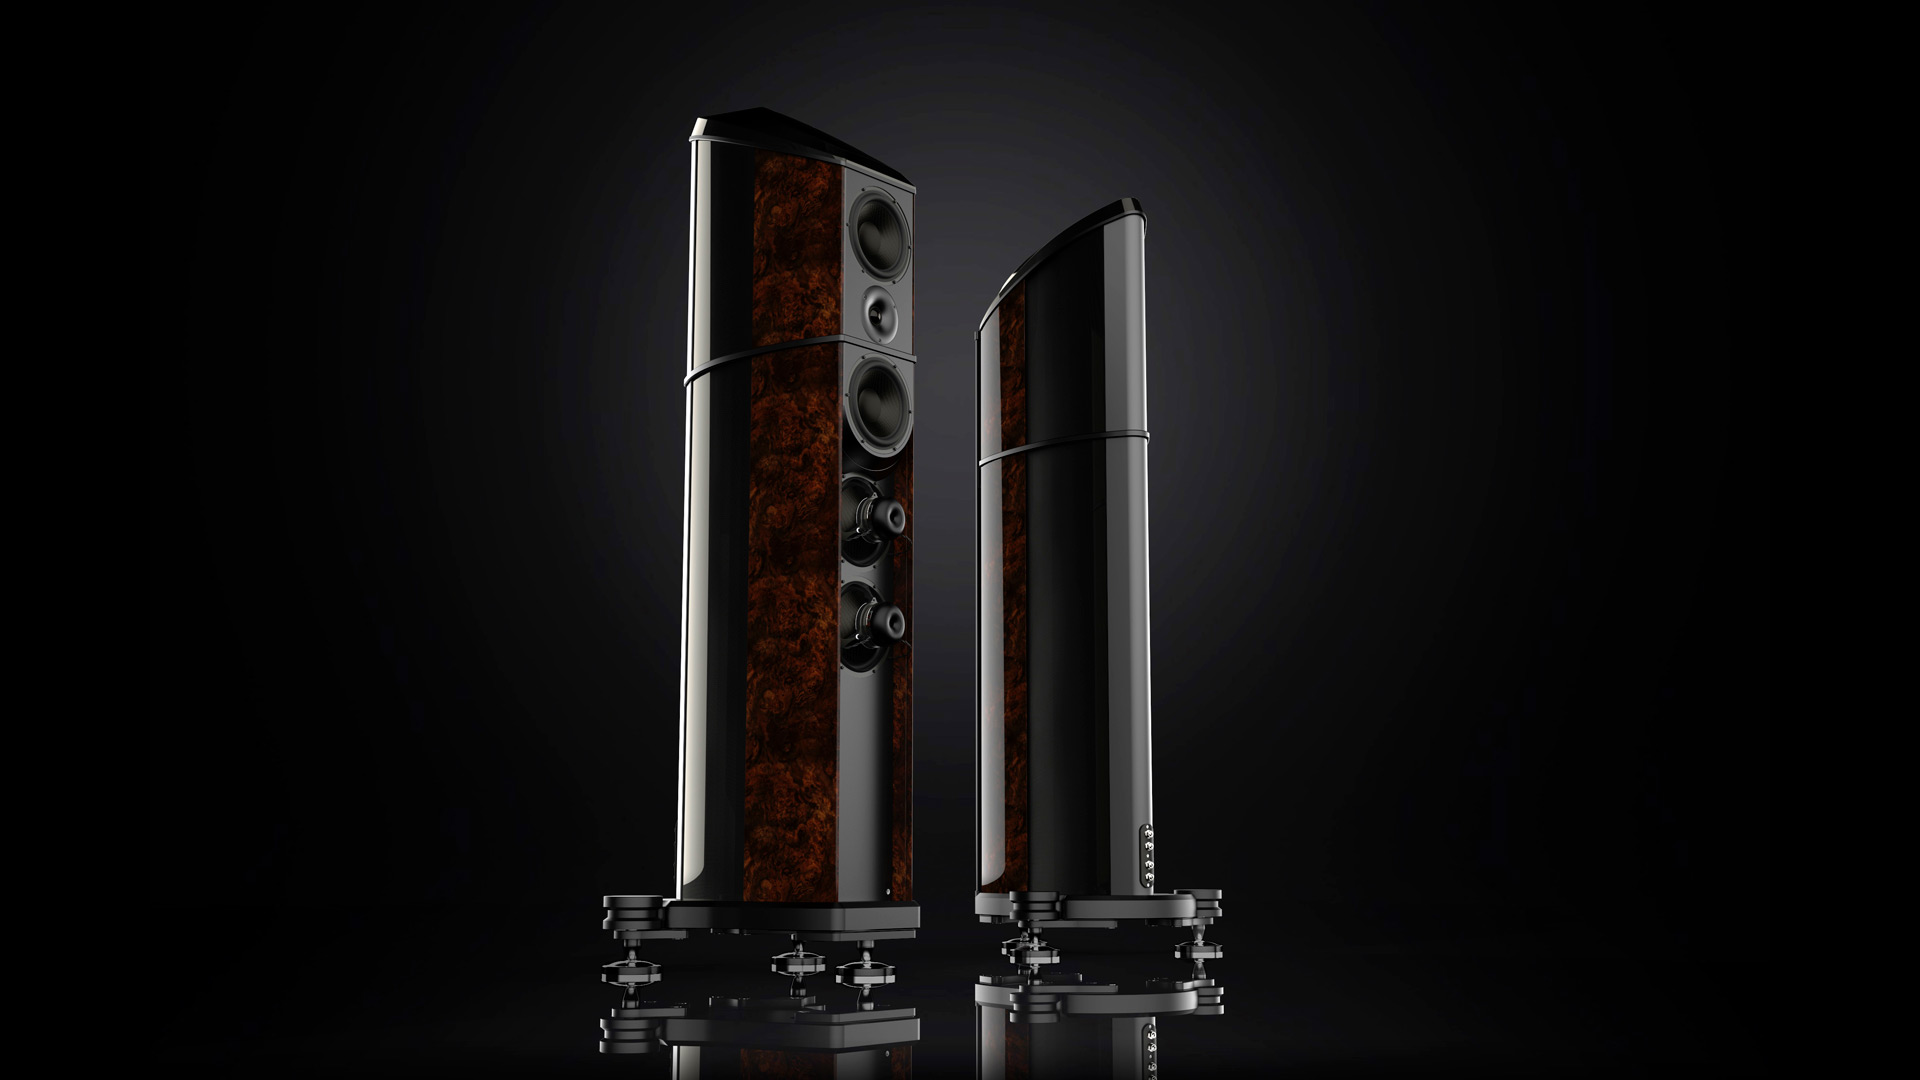 Geometry Series Resolution Loudspeaker launches at Munich HIGH END in May and Los Angeles Audio Show in June